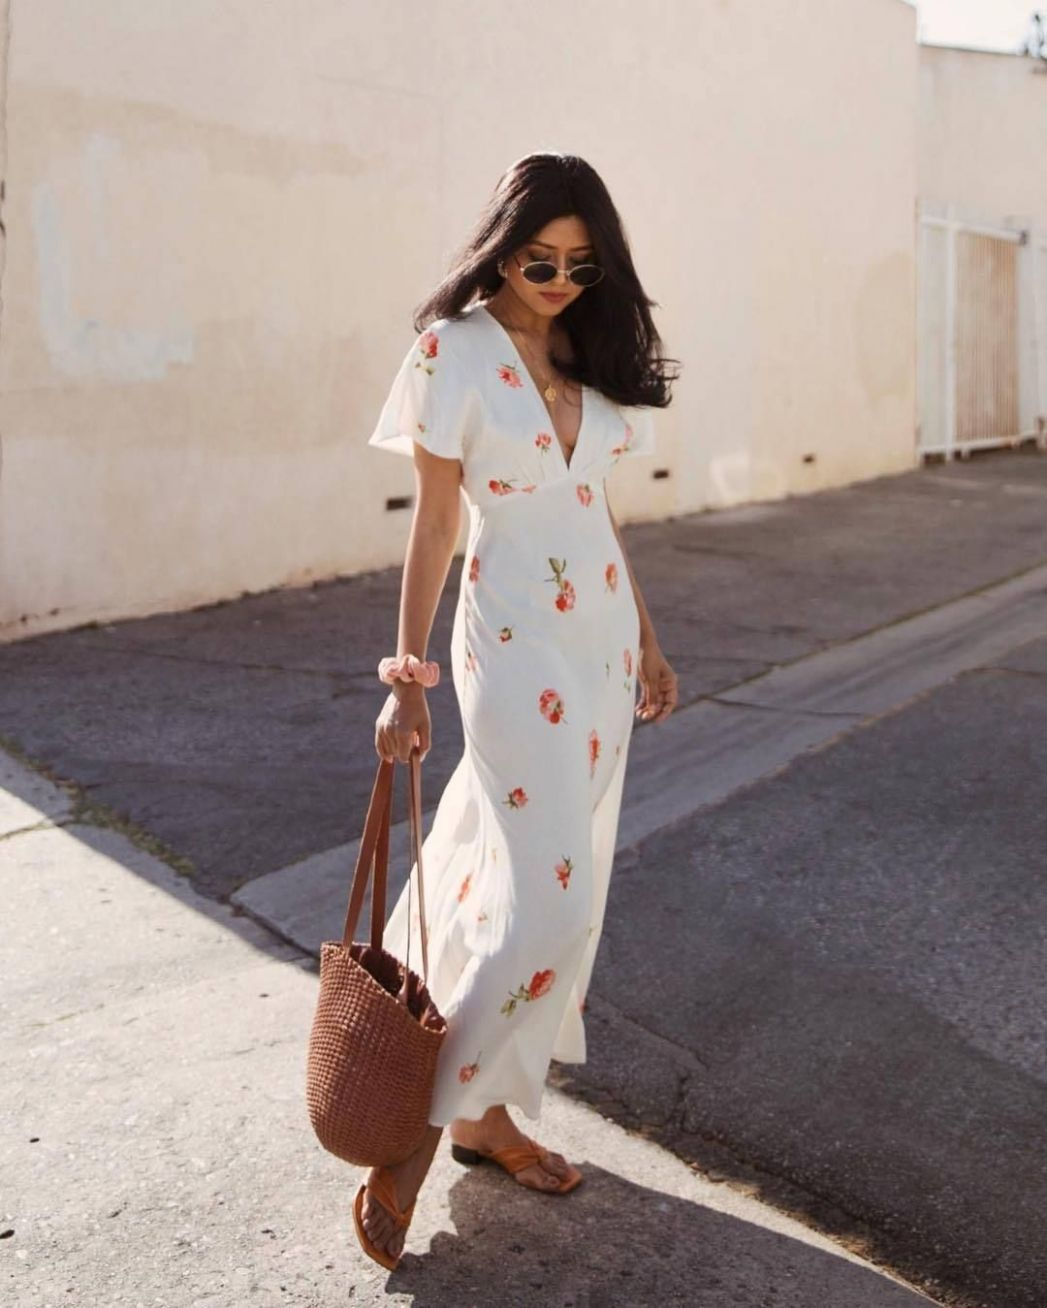 Get the dress for 9£ at Zara | Summer dress outfits, Trendy ..